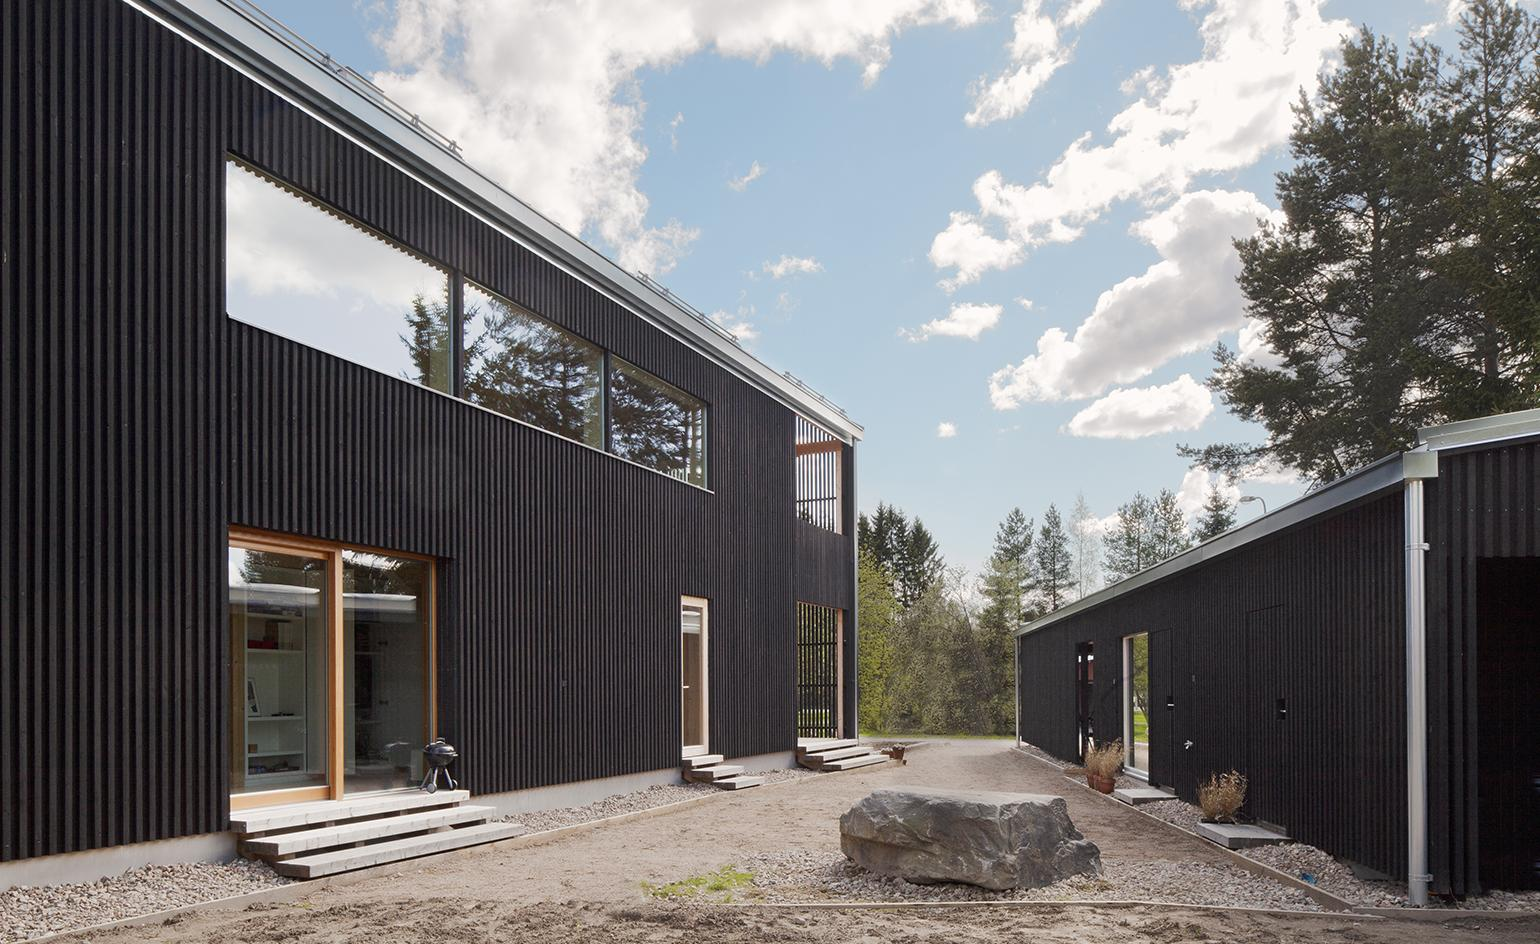 Timber treasure: architect Teemu Hirvilammi completes his family home in Finland